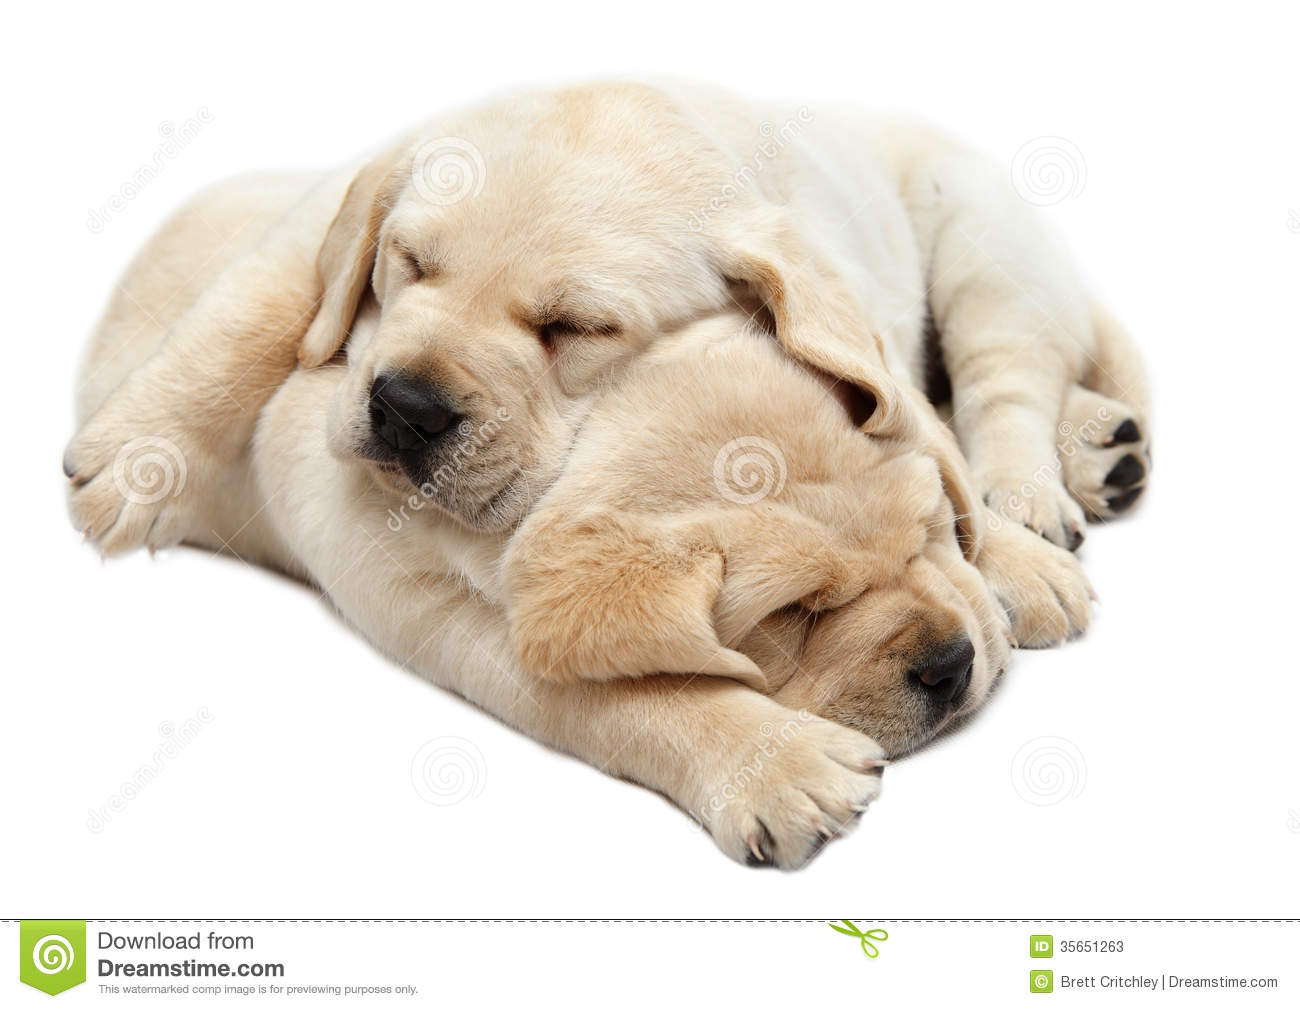 Pink Wallpaper With Cute Puppy Golden Retriever Labrador Puppies Sleeping Stock Image Image Of Cuddles